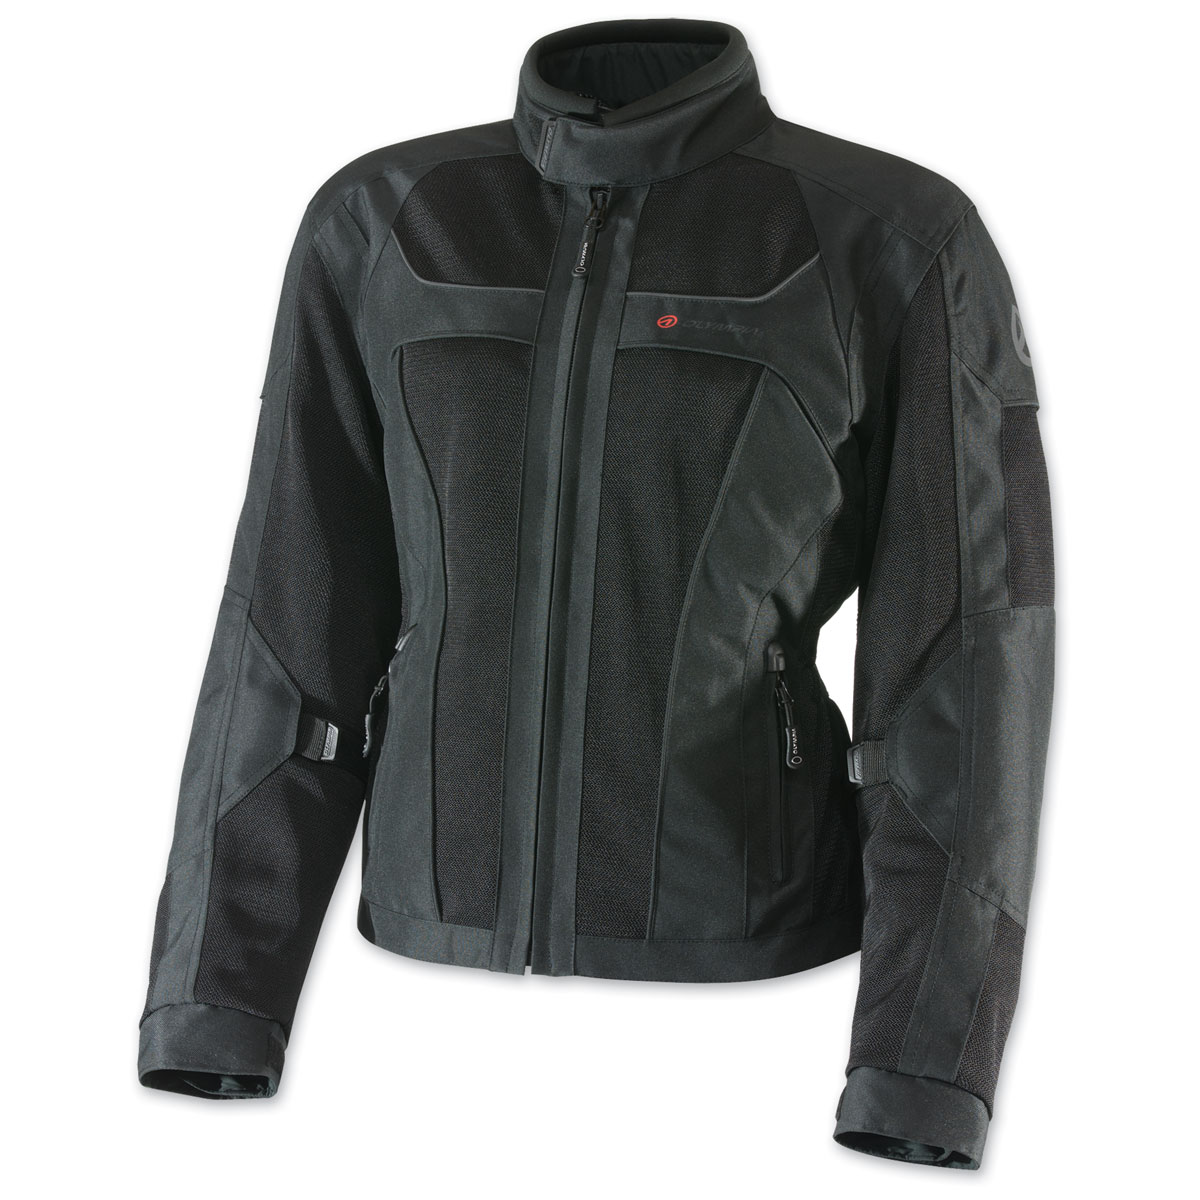 Olympia Moto Sports Women's Eve Mesh Tech Black Jacket